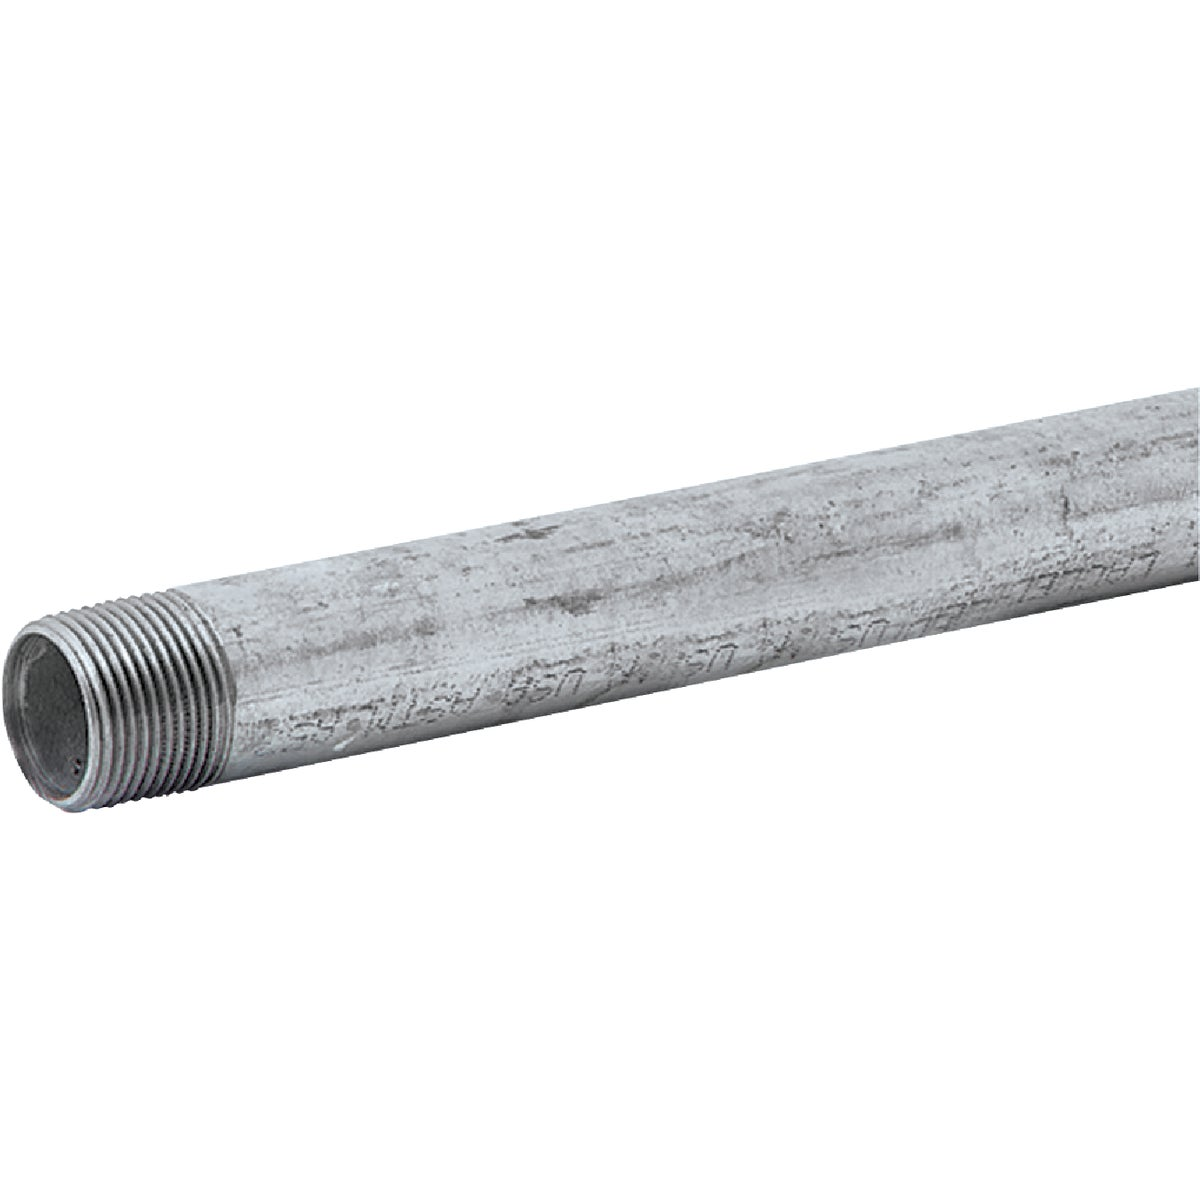 "3/8""X10' GALV PIPE - 10324 by Southland Pipe"